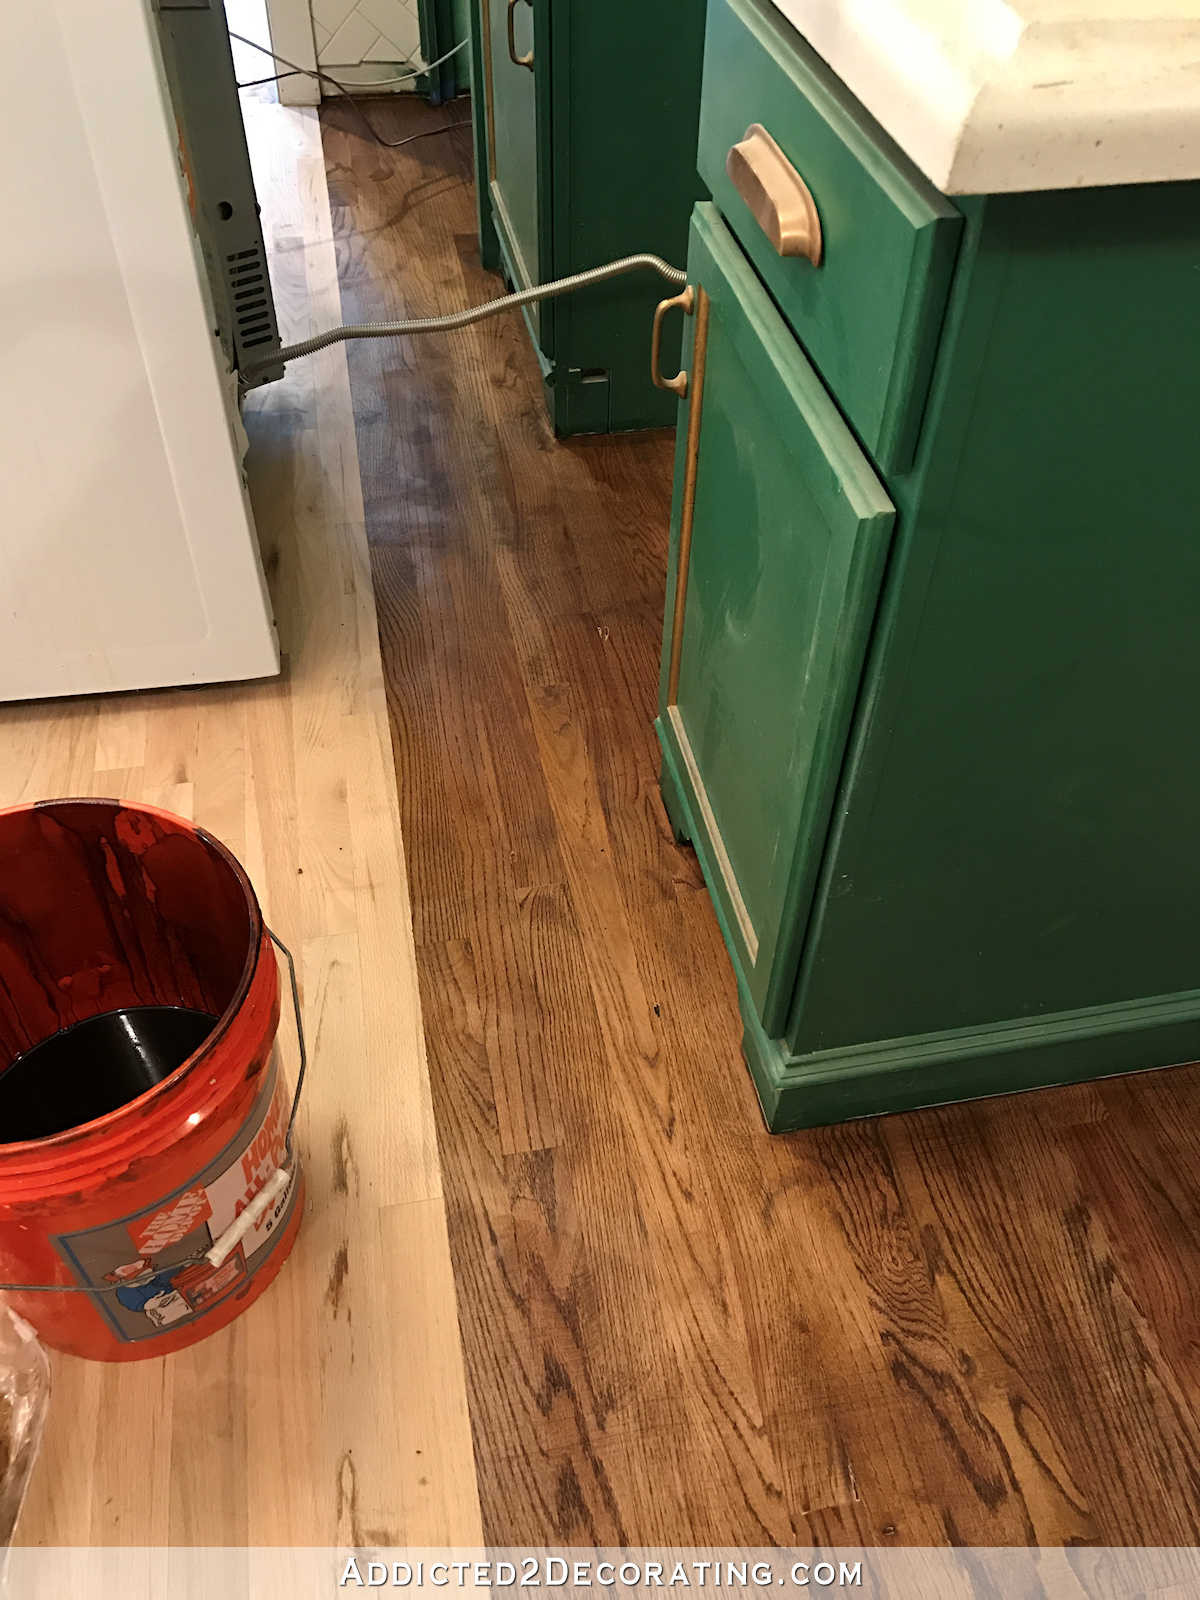 hardwood floor installation cost denver of adventures in staining my red oak hardwood floors products process regarding staining red oak hardwood floors 10 stain on kitchen floor behind stove and refrigerator